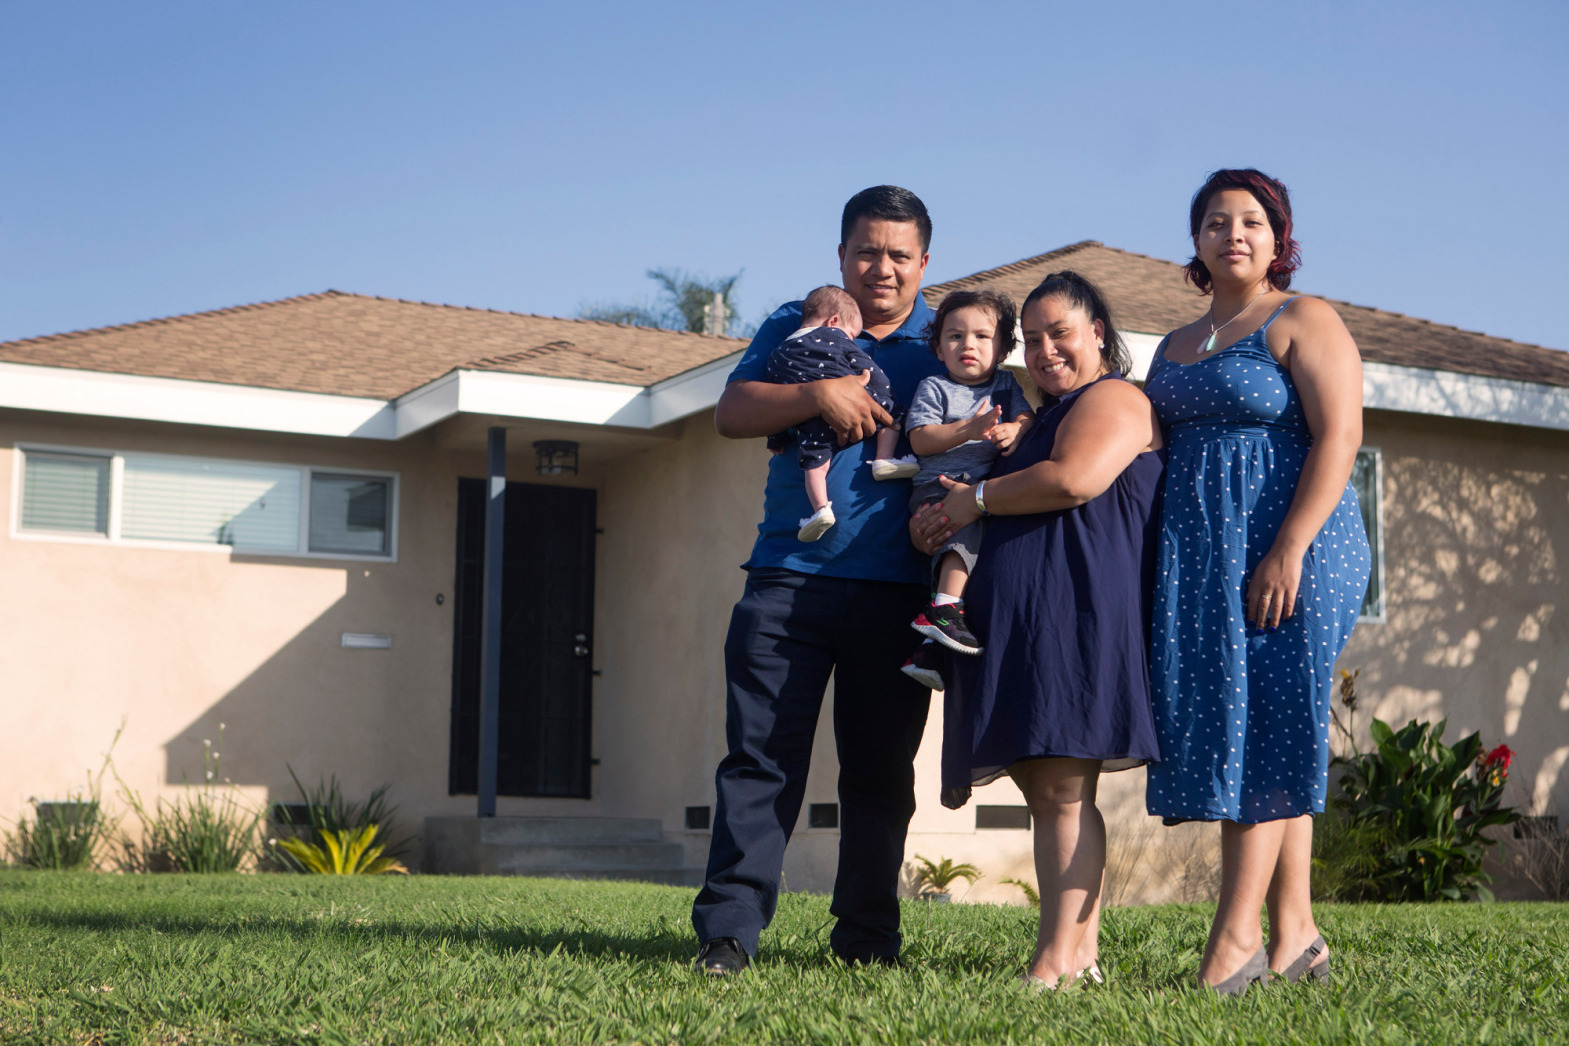 New homeowners share their strategies to win a bidding war